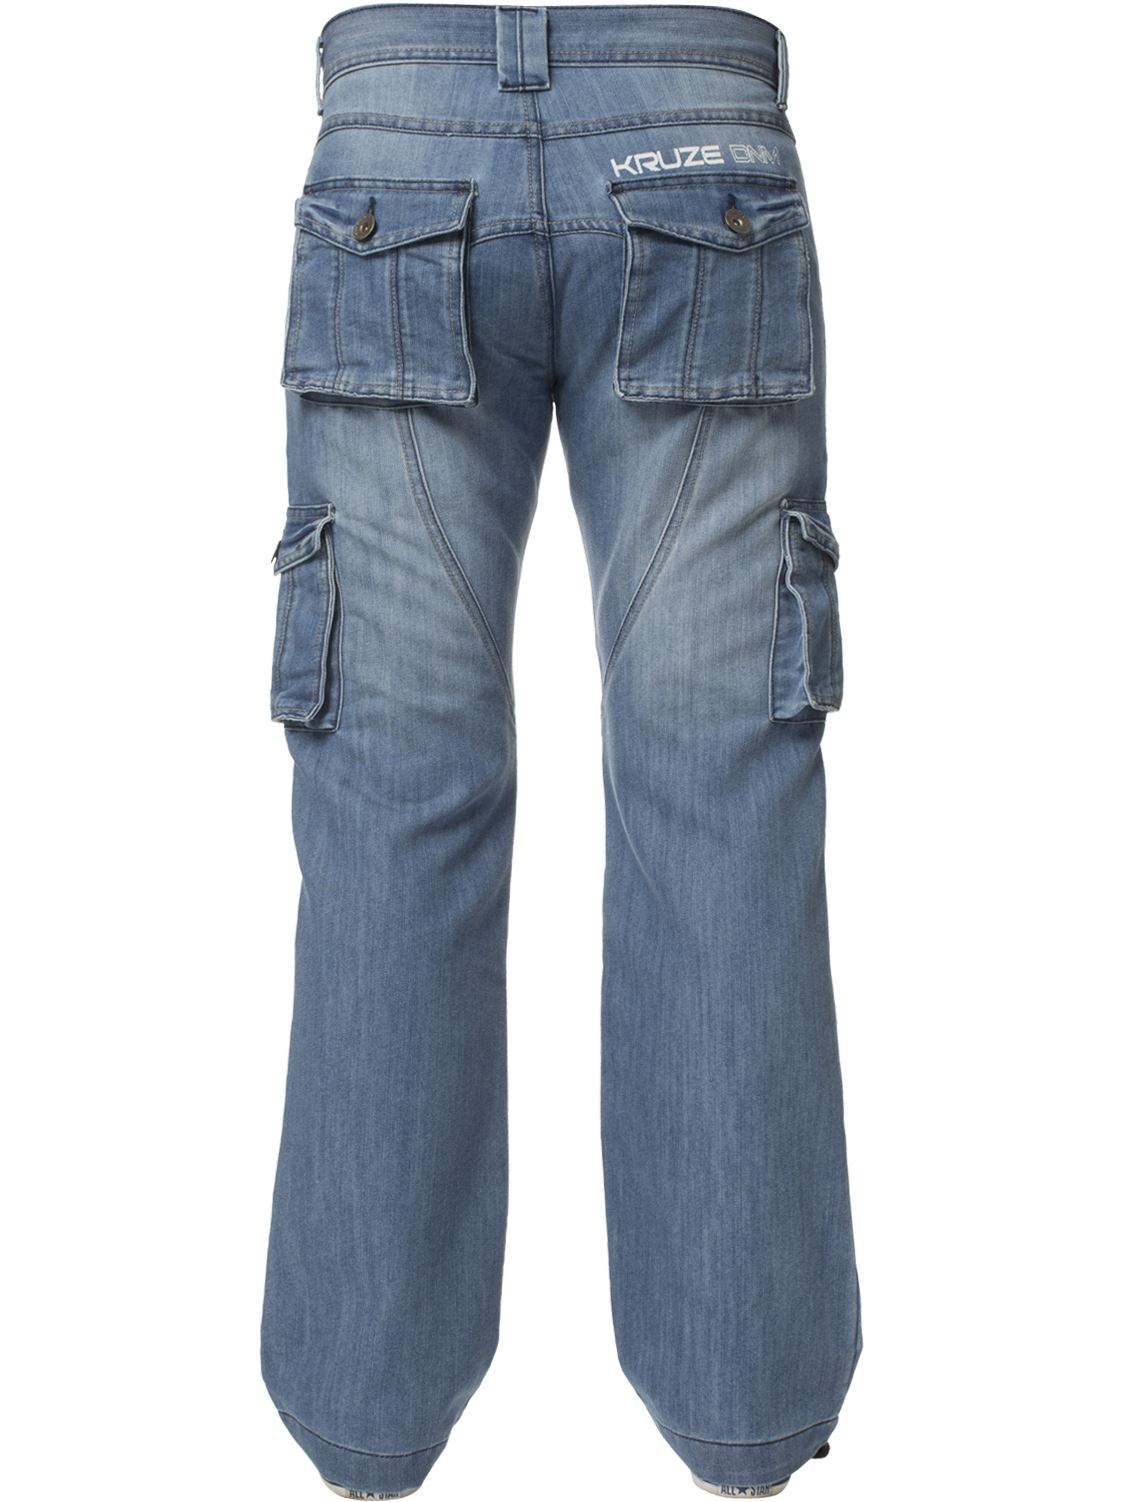 Mens-Cargo-Jeans-Combat-Trousers-Heavy-Duty-Work-Casual-Big-Tall-Denim-Pants thumbnail 82